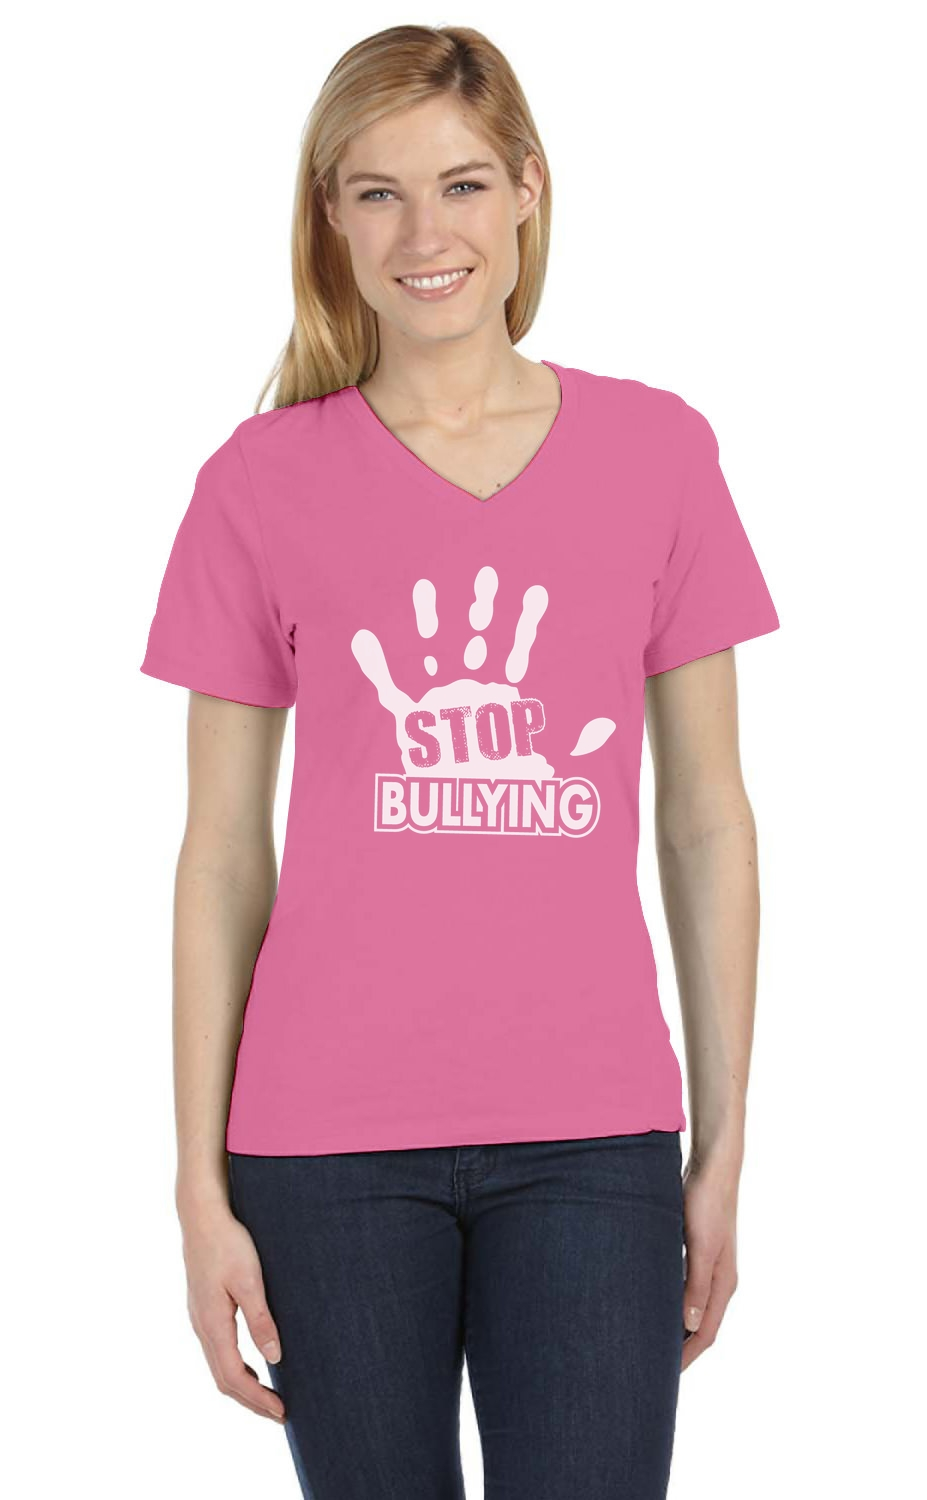 Stop Bullying Pink Shirt Day Anti-Bullying V-Neck Women T-Shirt ...